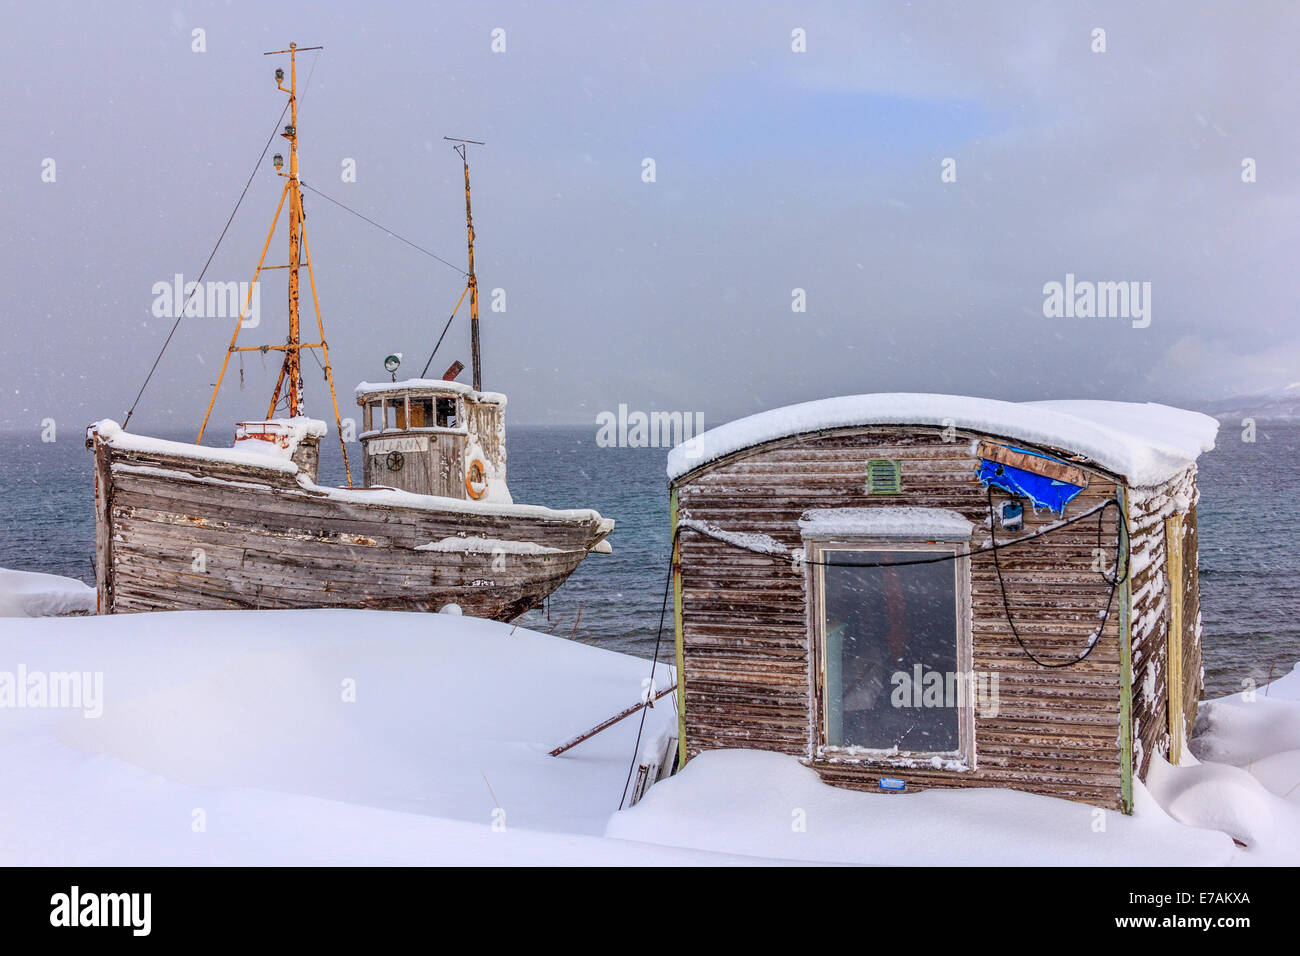 Fishing boat at winter time - Stock Image